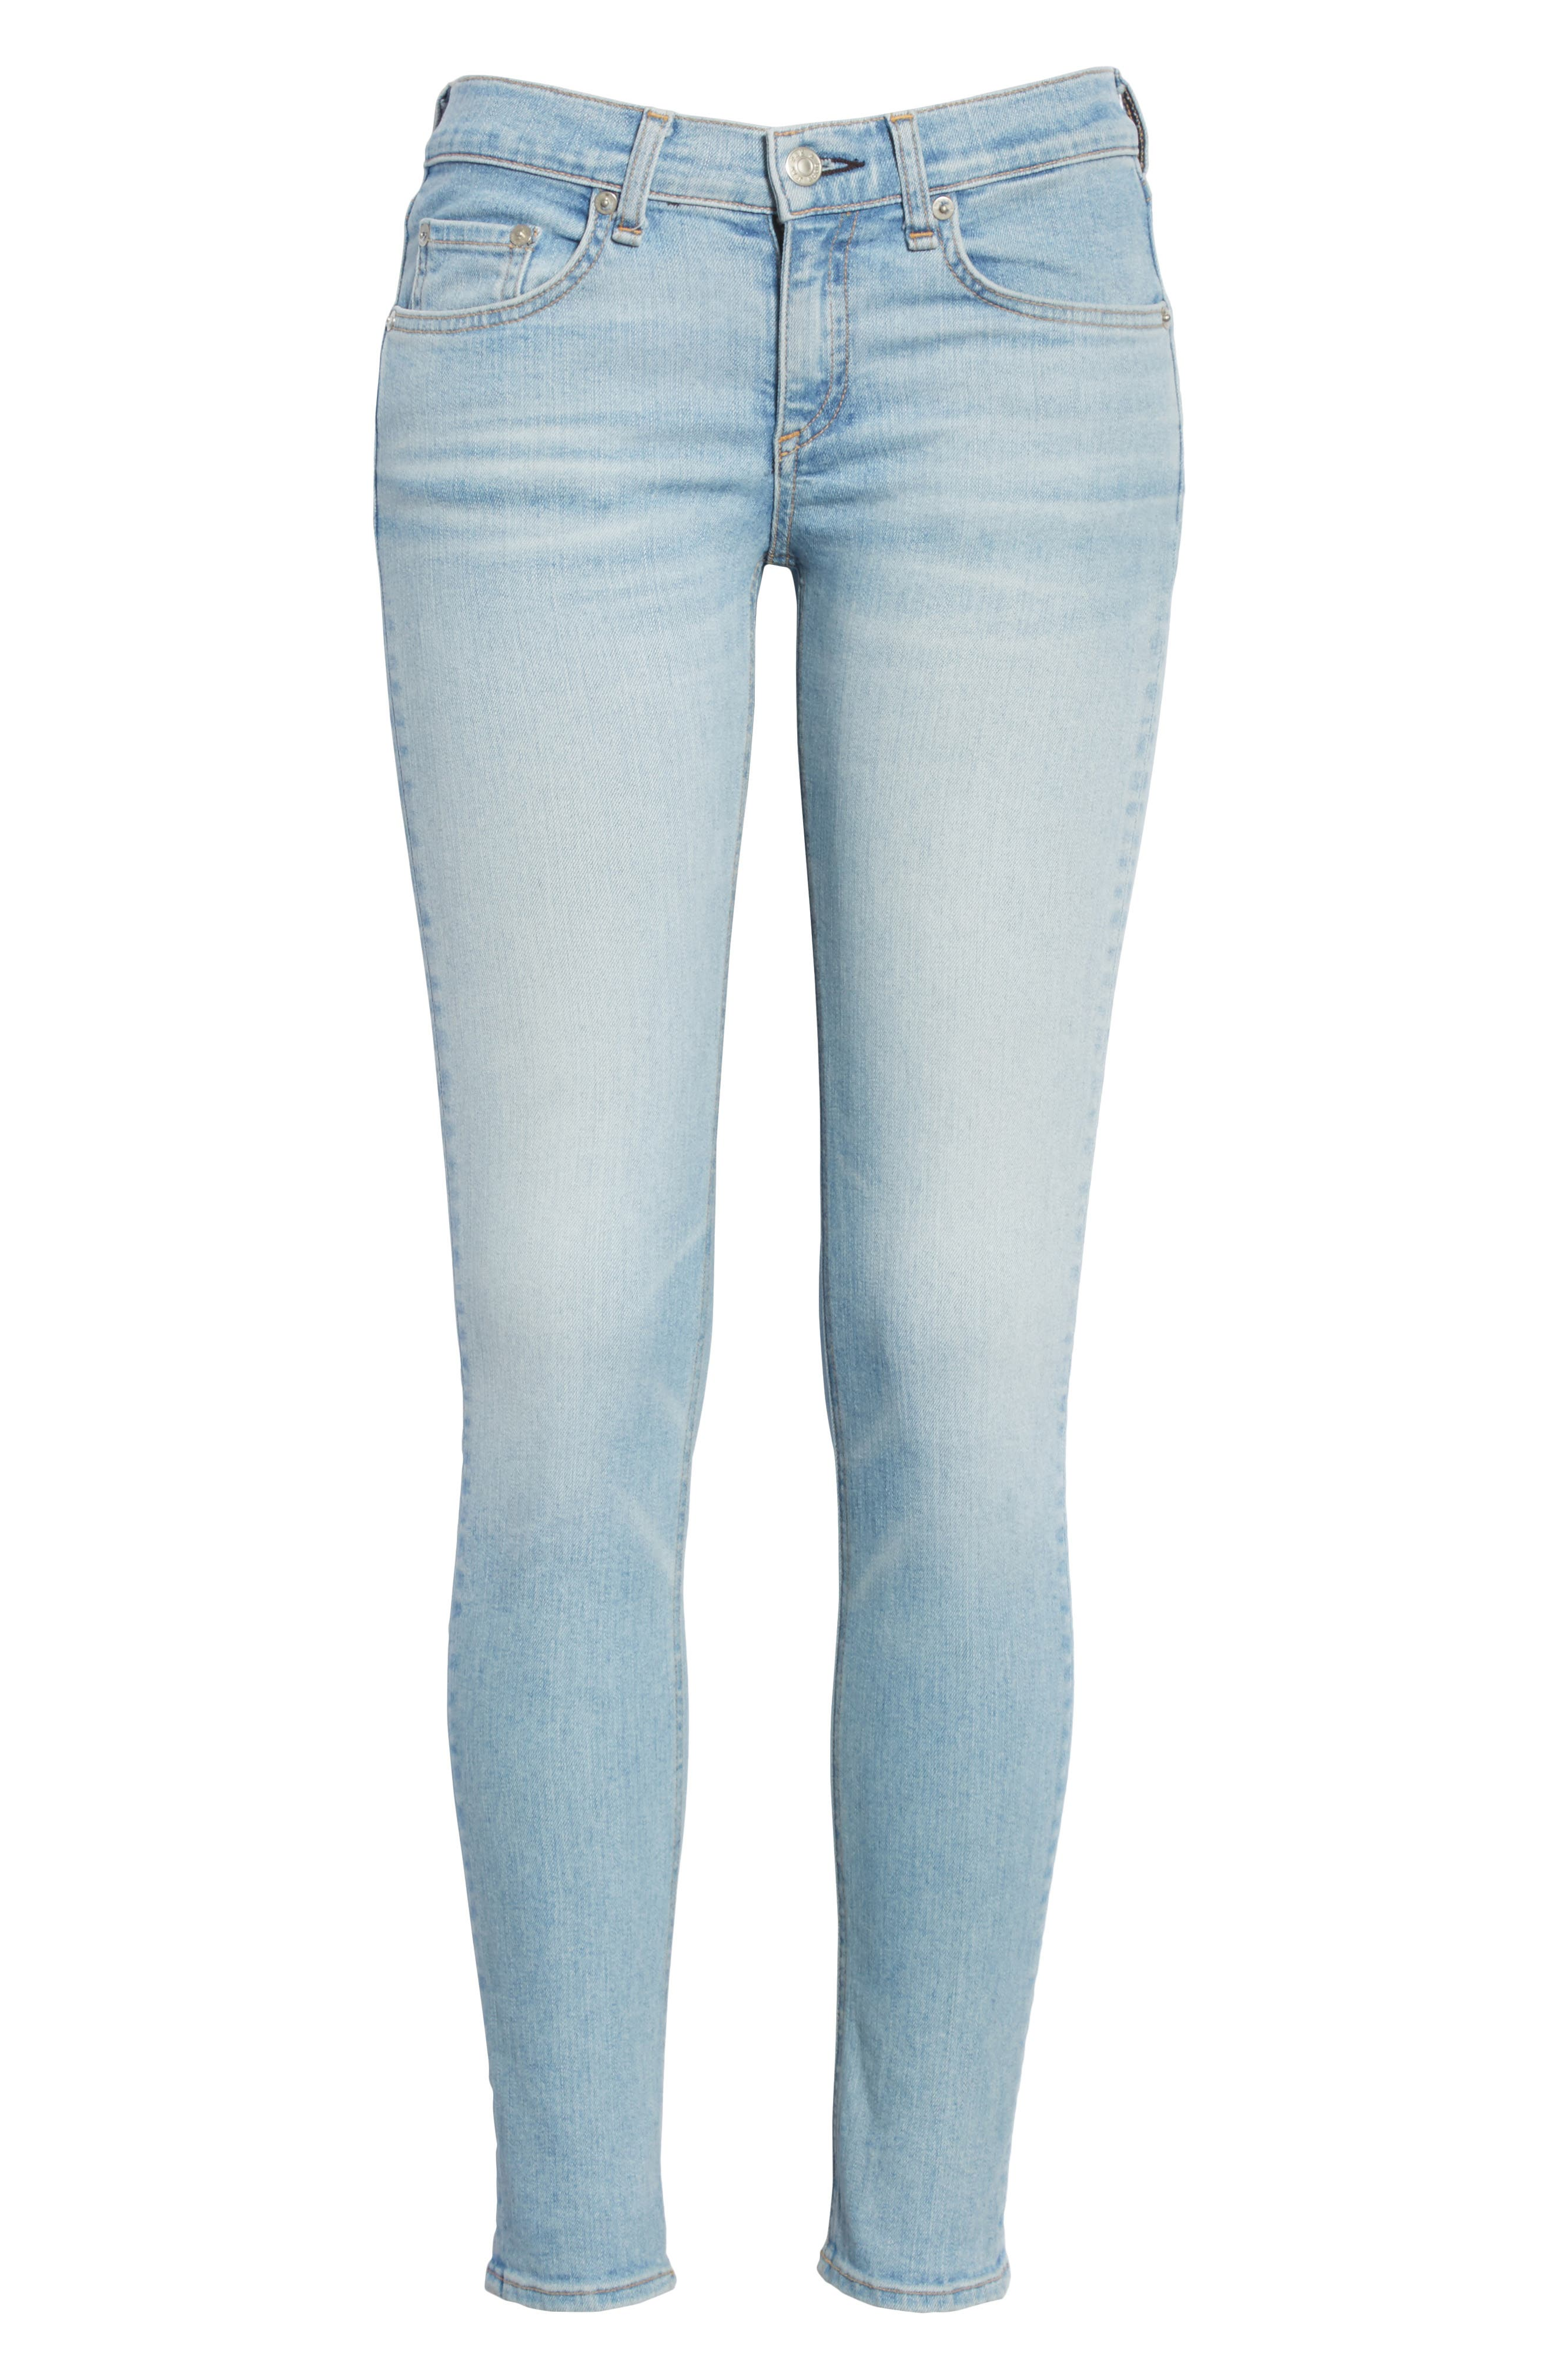 Ankle Skinny Jeans,                             Alternate thumbnail 6, color,                             Nelly